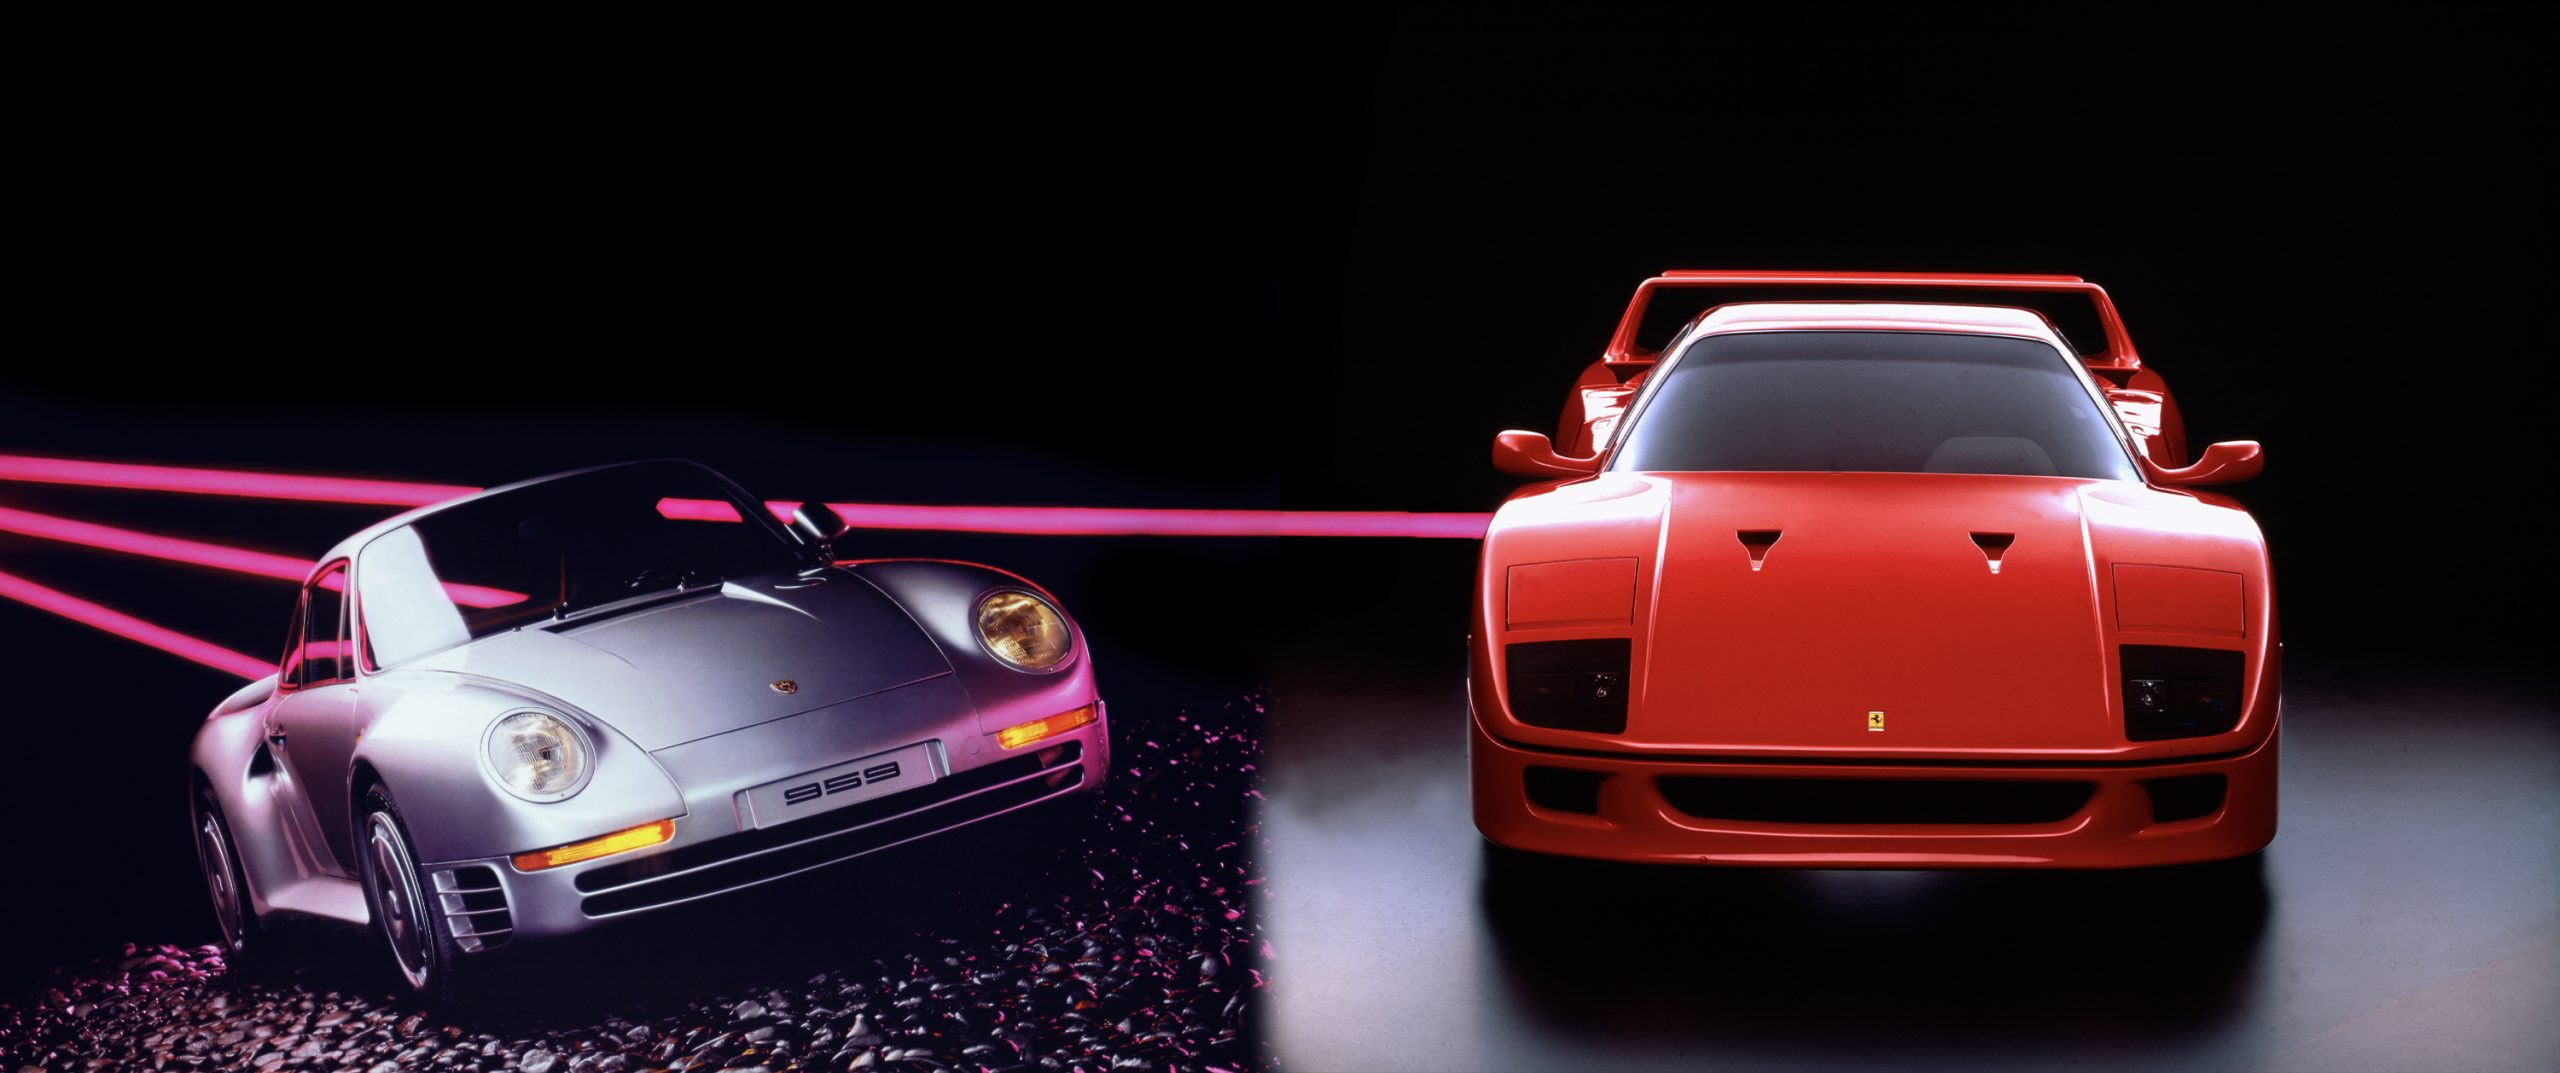 'The most exciting supercar in the world versus the greatest.' Head-to-head in the Ferrari F40 and Porsche 959